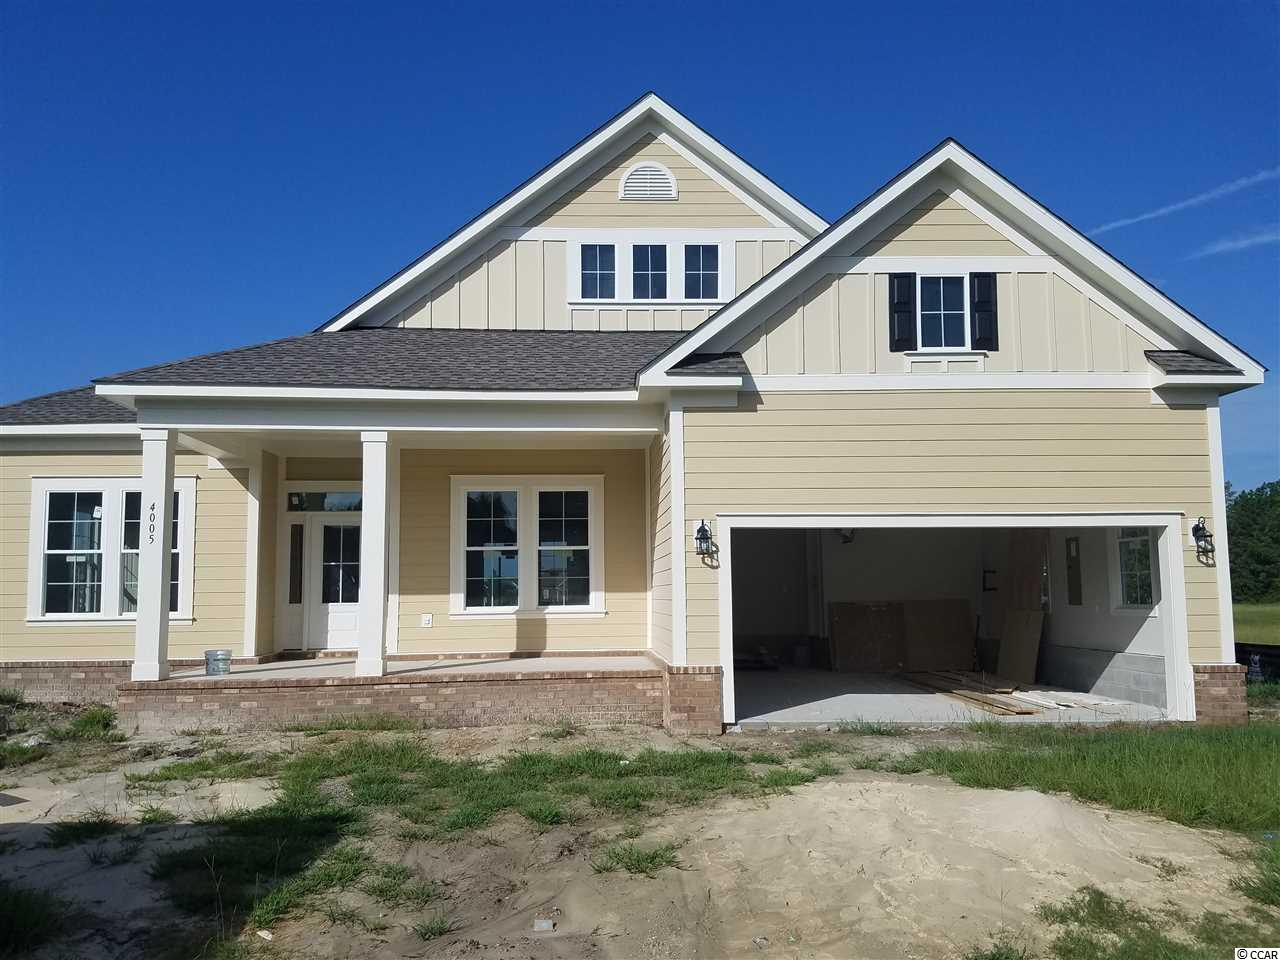 Brand new single story 'under construction' 'Magnolia' home on water in Waterway Palms Plantation!  This ranch style 4 BD 3 full bath home will feature over 2,400 heated sq ft of living space, open floorplan with 10 ft ceilings, great room, formal dining area, tile in all wet areas including master shower & kitchen backsplash.  Carpet in all bedrooms with 8# pad, crown molding in main living areas, granite counter tops throughtout, propane tankless water heater, LVP flooring in great room, dining and stairs.  Also includes 'Honeywell Tuxedo Touch Home Automation', R-50 attic insulation, 2 yr energy guarantee, both covered and screened porch, garage and landscaping packages. Builder works with Home Energy Group (HEG) to increase and improve energy efficiency in their homes.